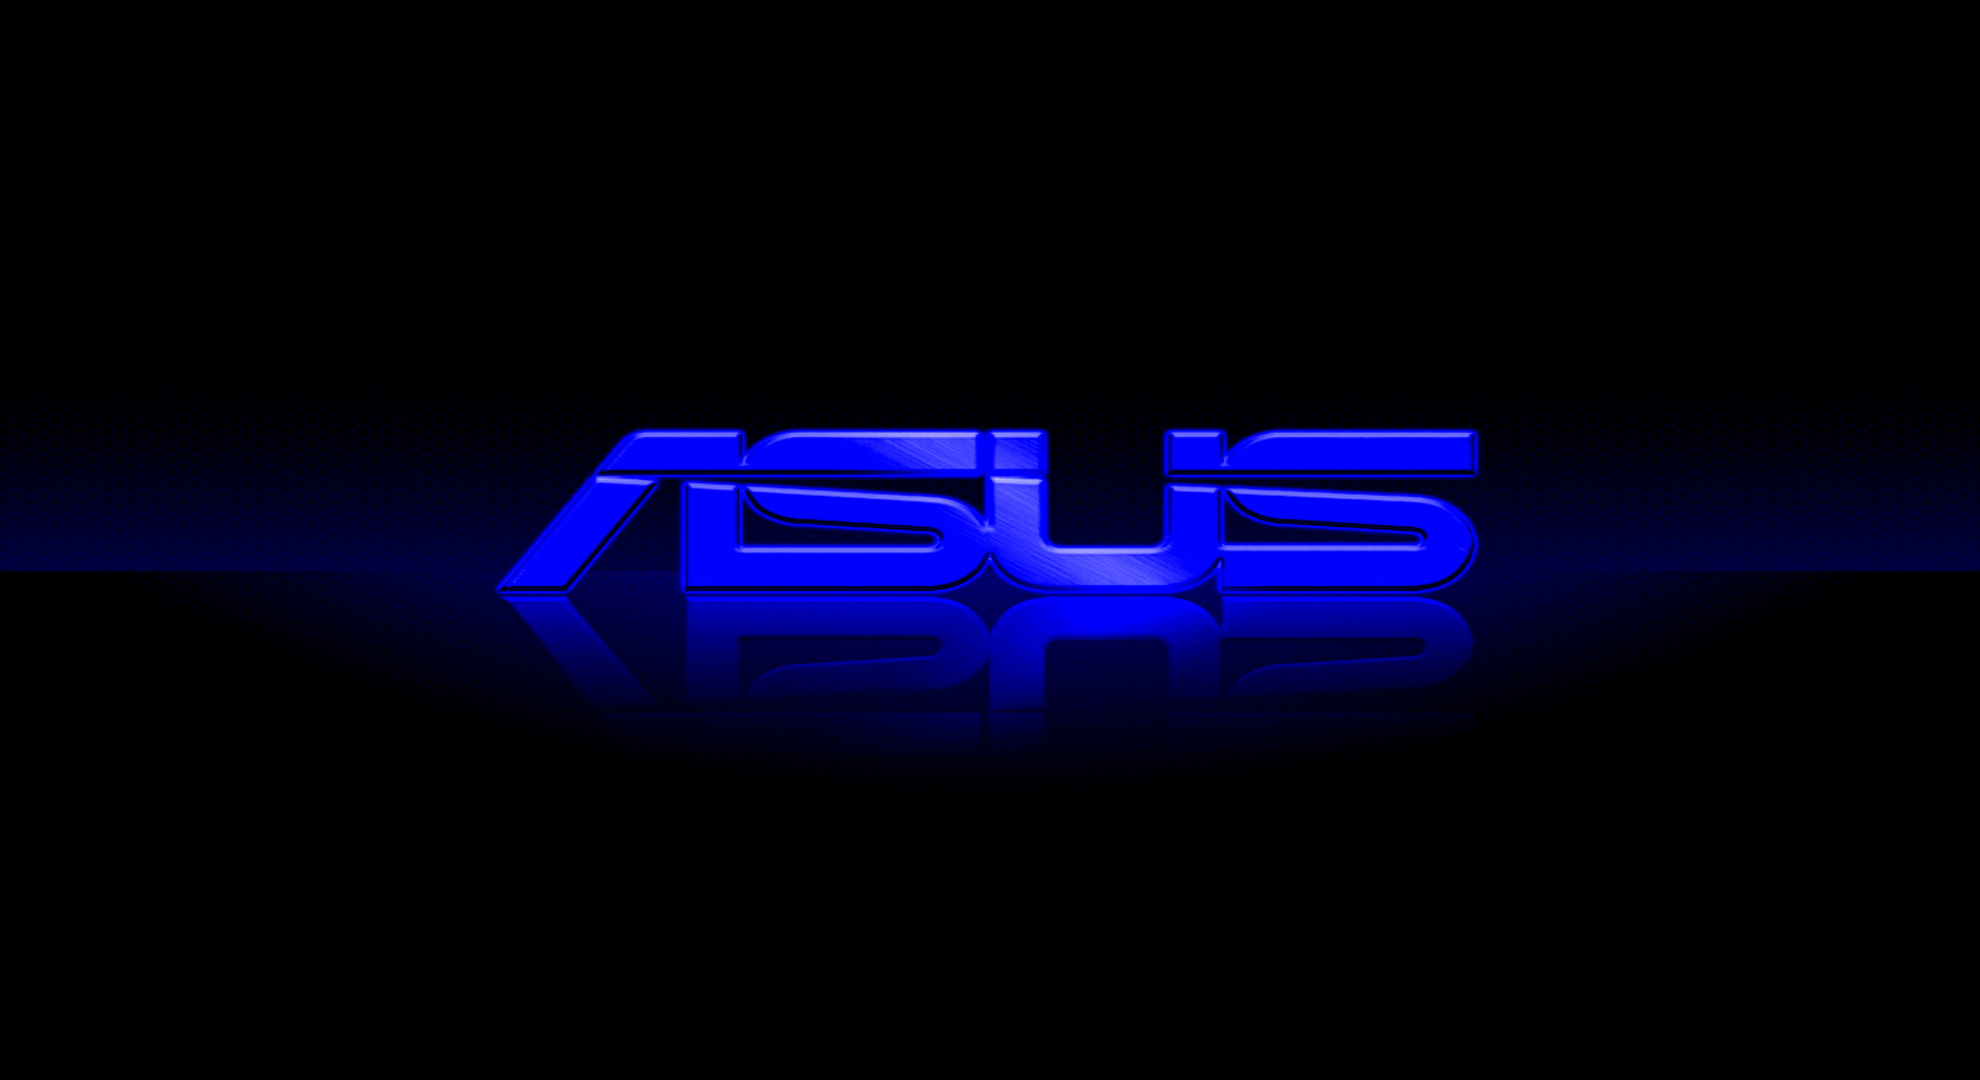 Asus Logo Computer Wallpapers Desktop Backgrounds 1980x1080 ID 1980x1080